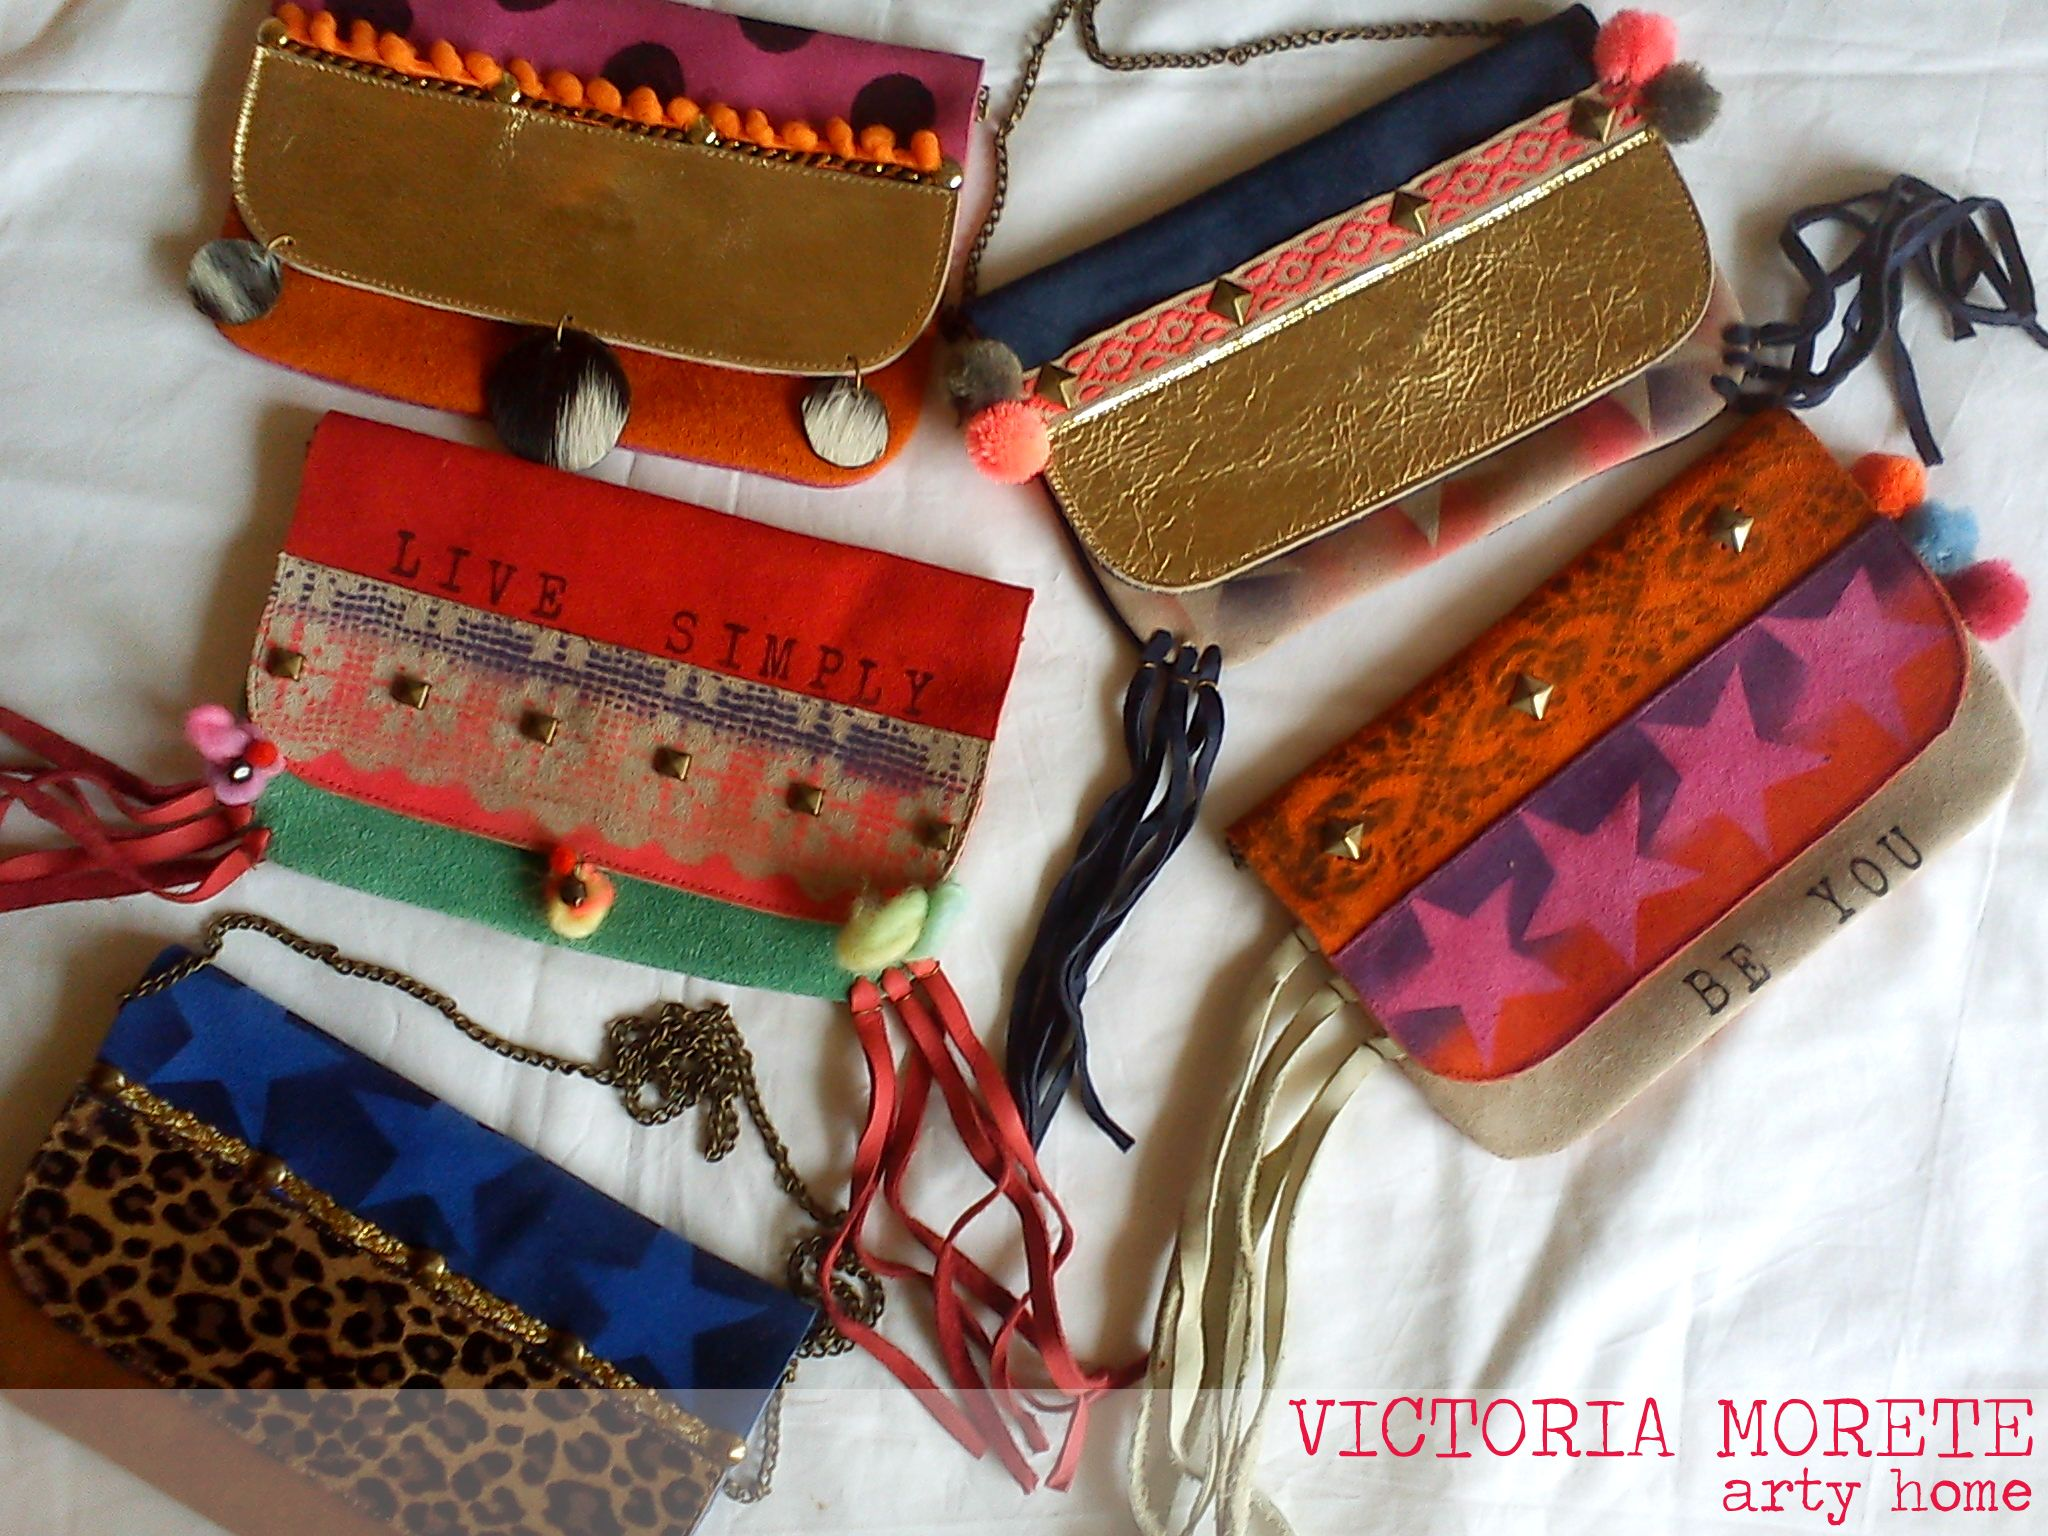 https://www.facebook.com/pages/VICTORIA-MORETE-arty-home/885254921515977